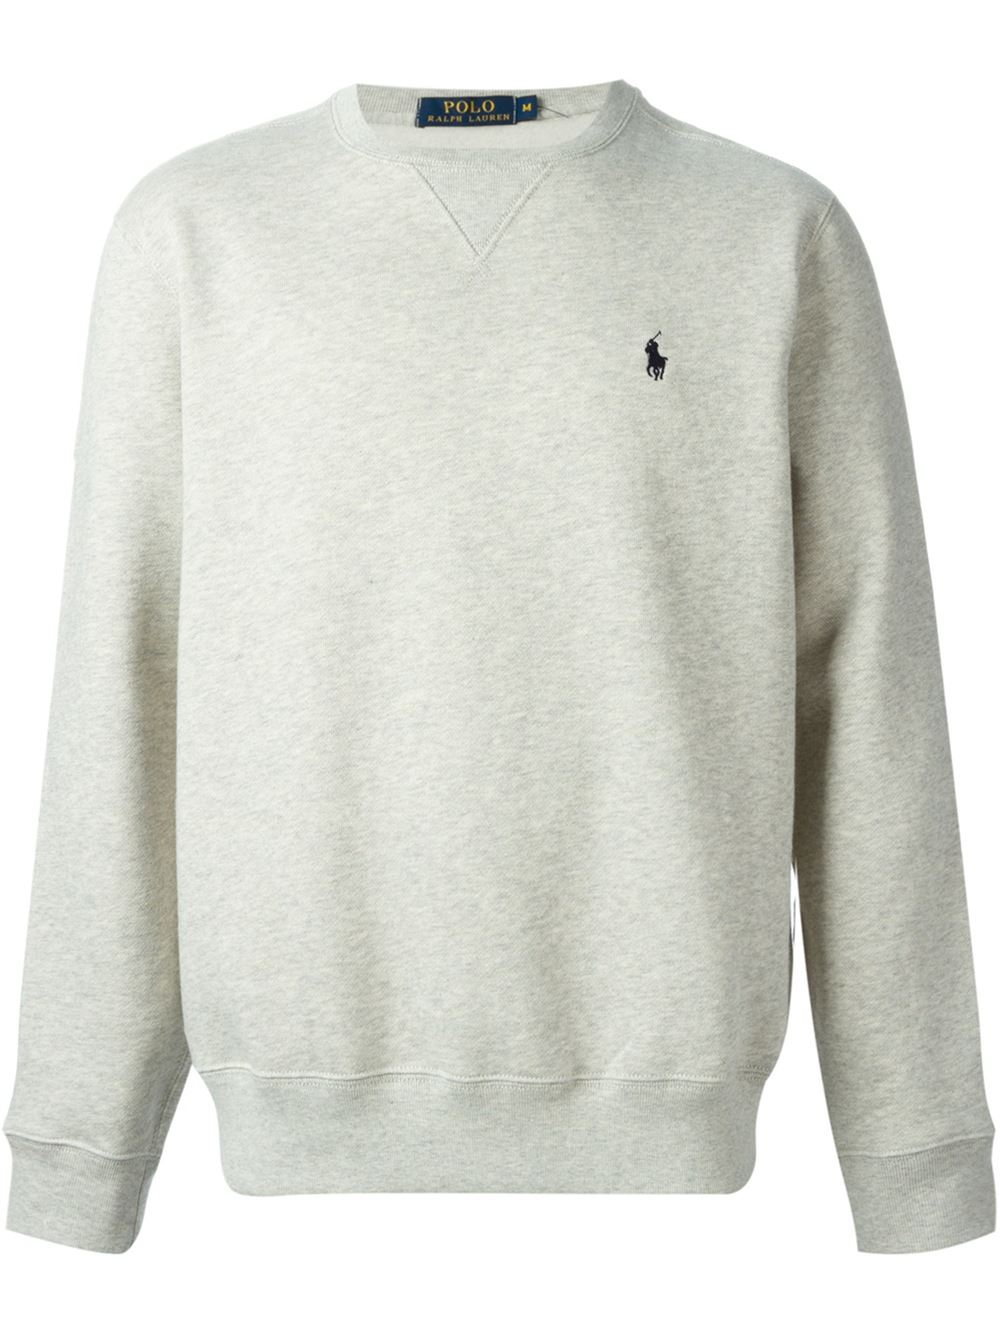 polo ralph lauren chest logo sweatshirt in beige for men. Black Bedroom Furniture Sets. Home Design Ideas